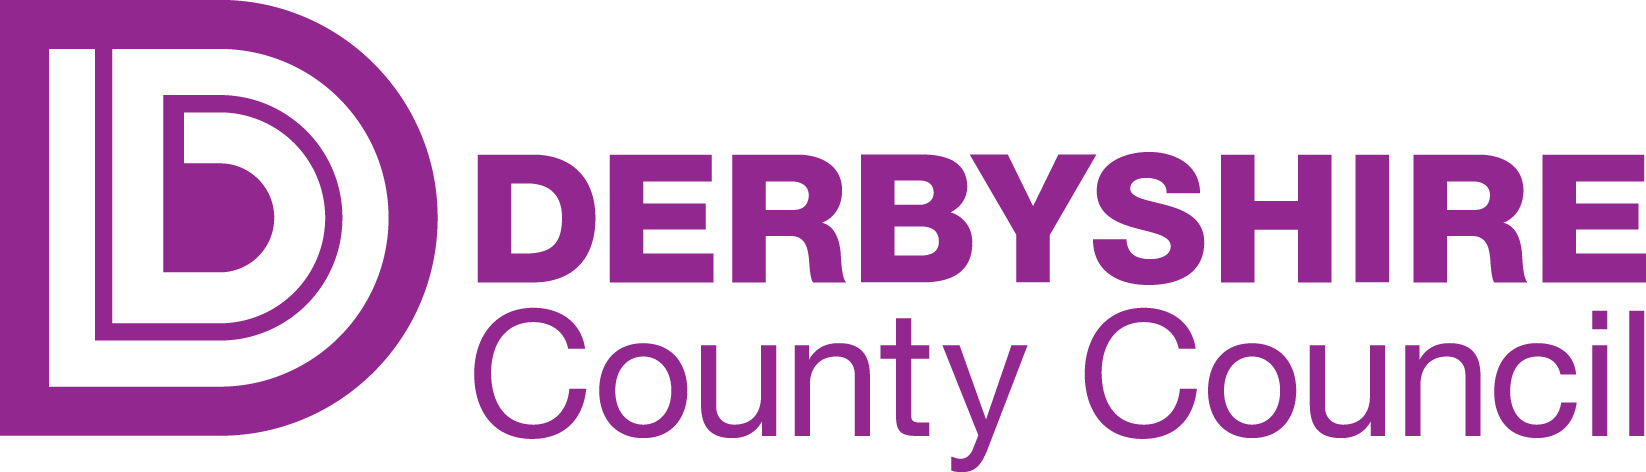 Derbyshire CC Logo no strapline purple